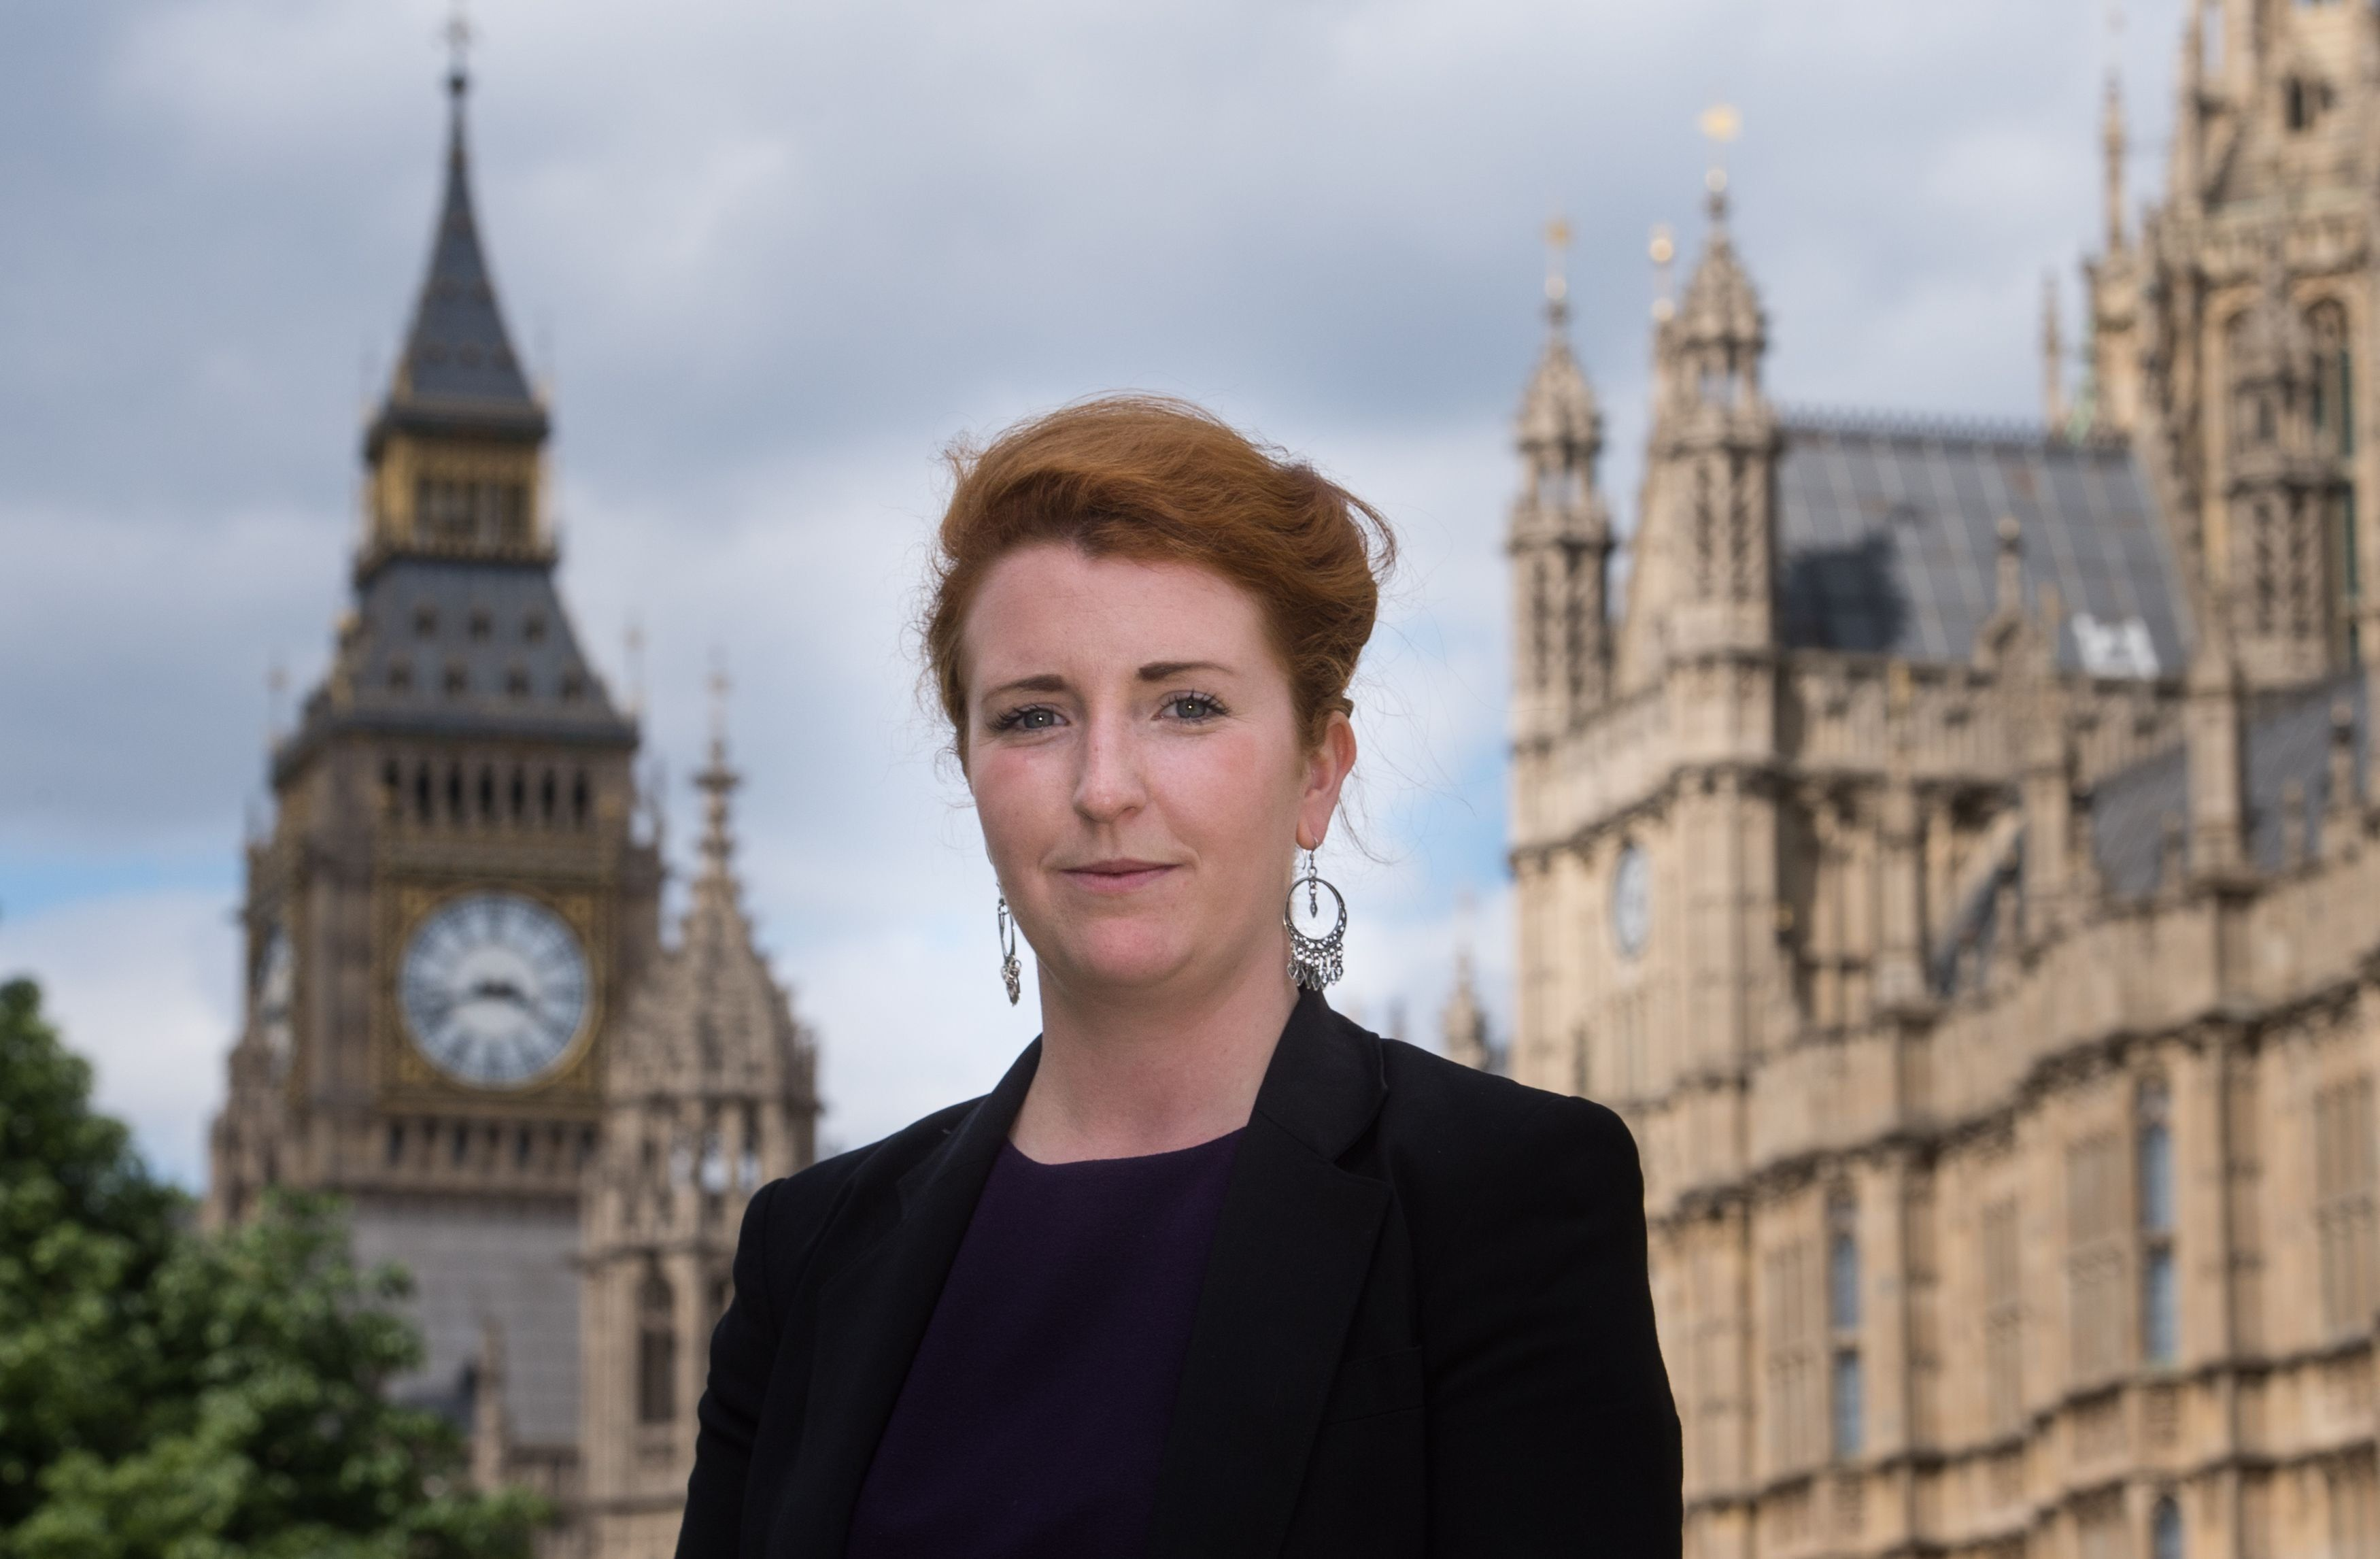 'Explicit' Death Threats Sent To MP Calling For Britain First To Be